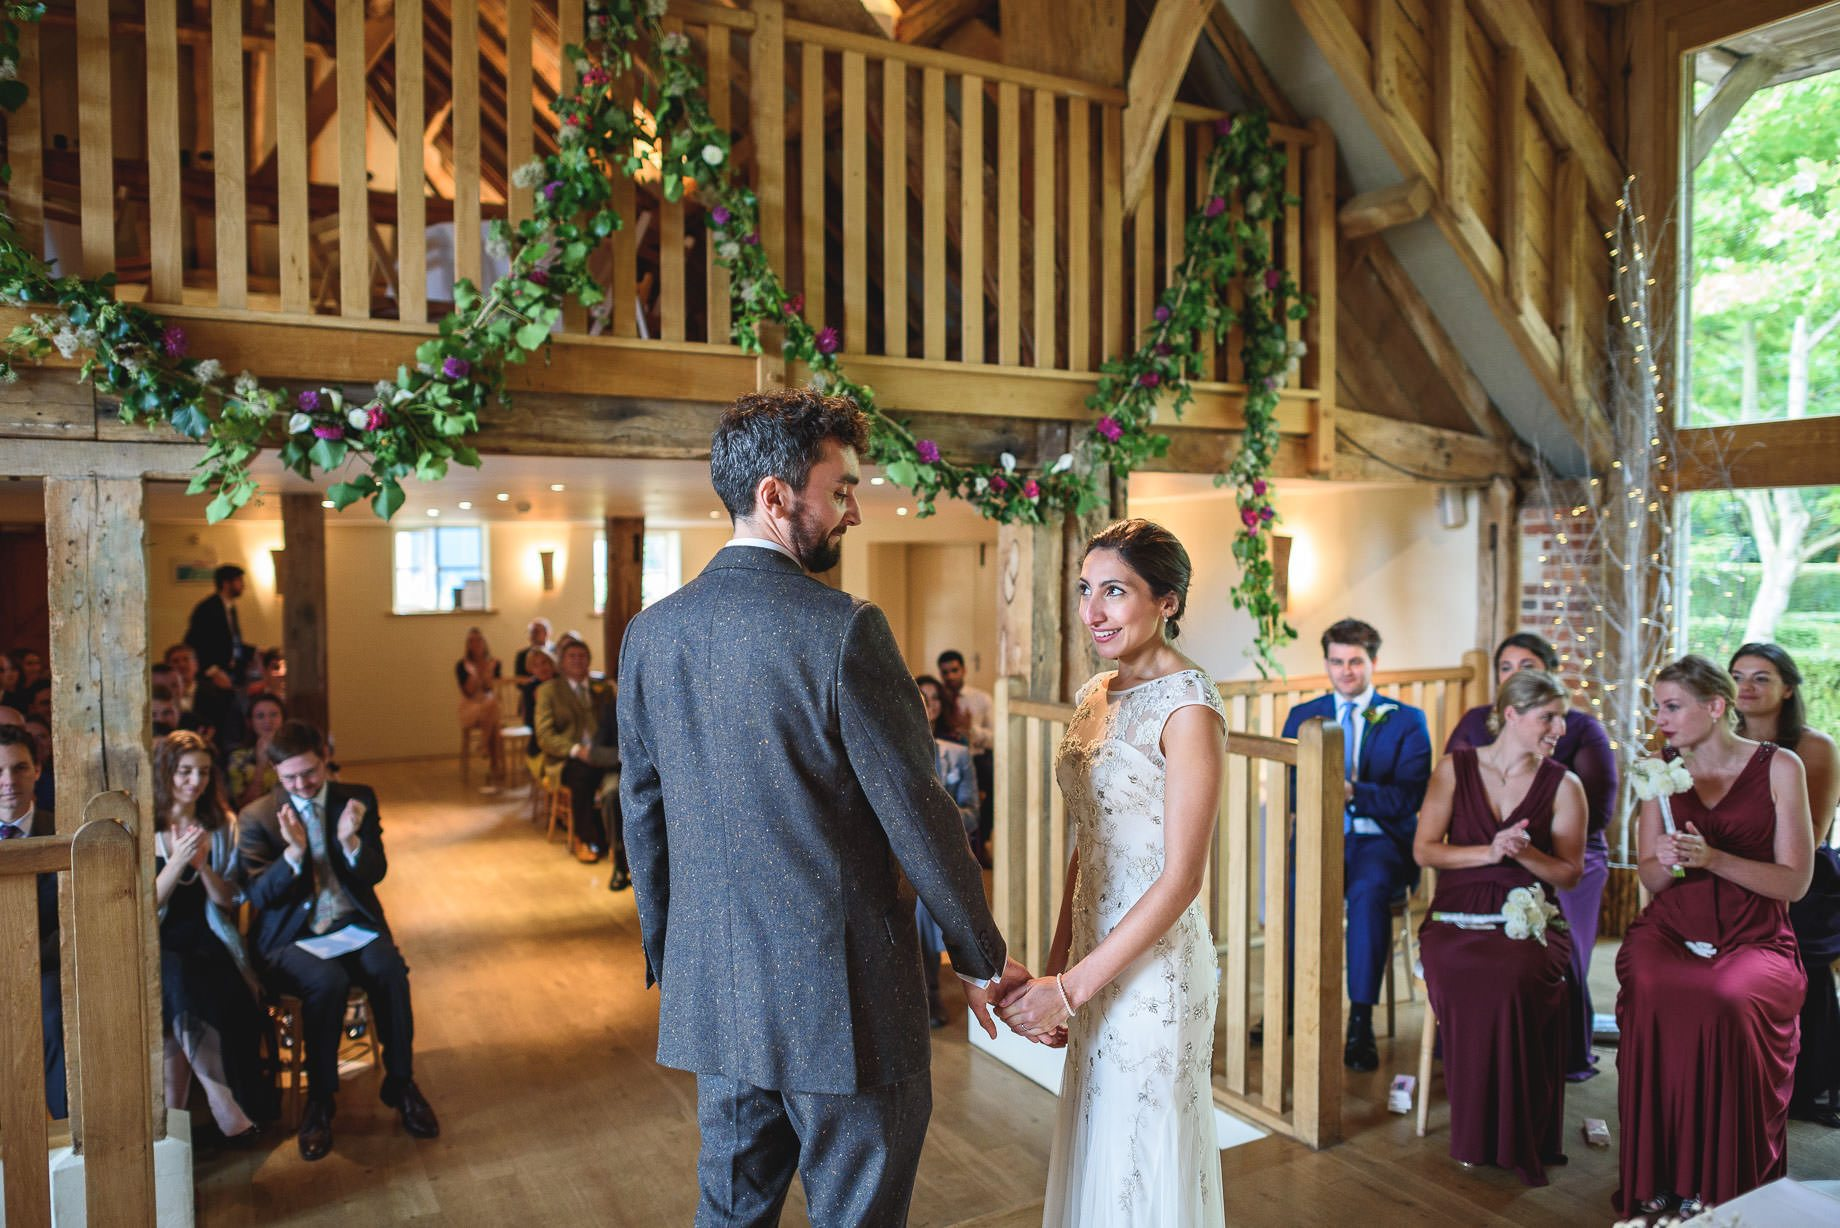 bury-court-barn-wedding-photography-guy-collier-photography-nadia-tom-62-of-184